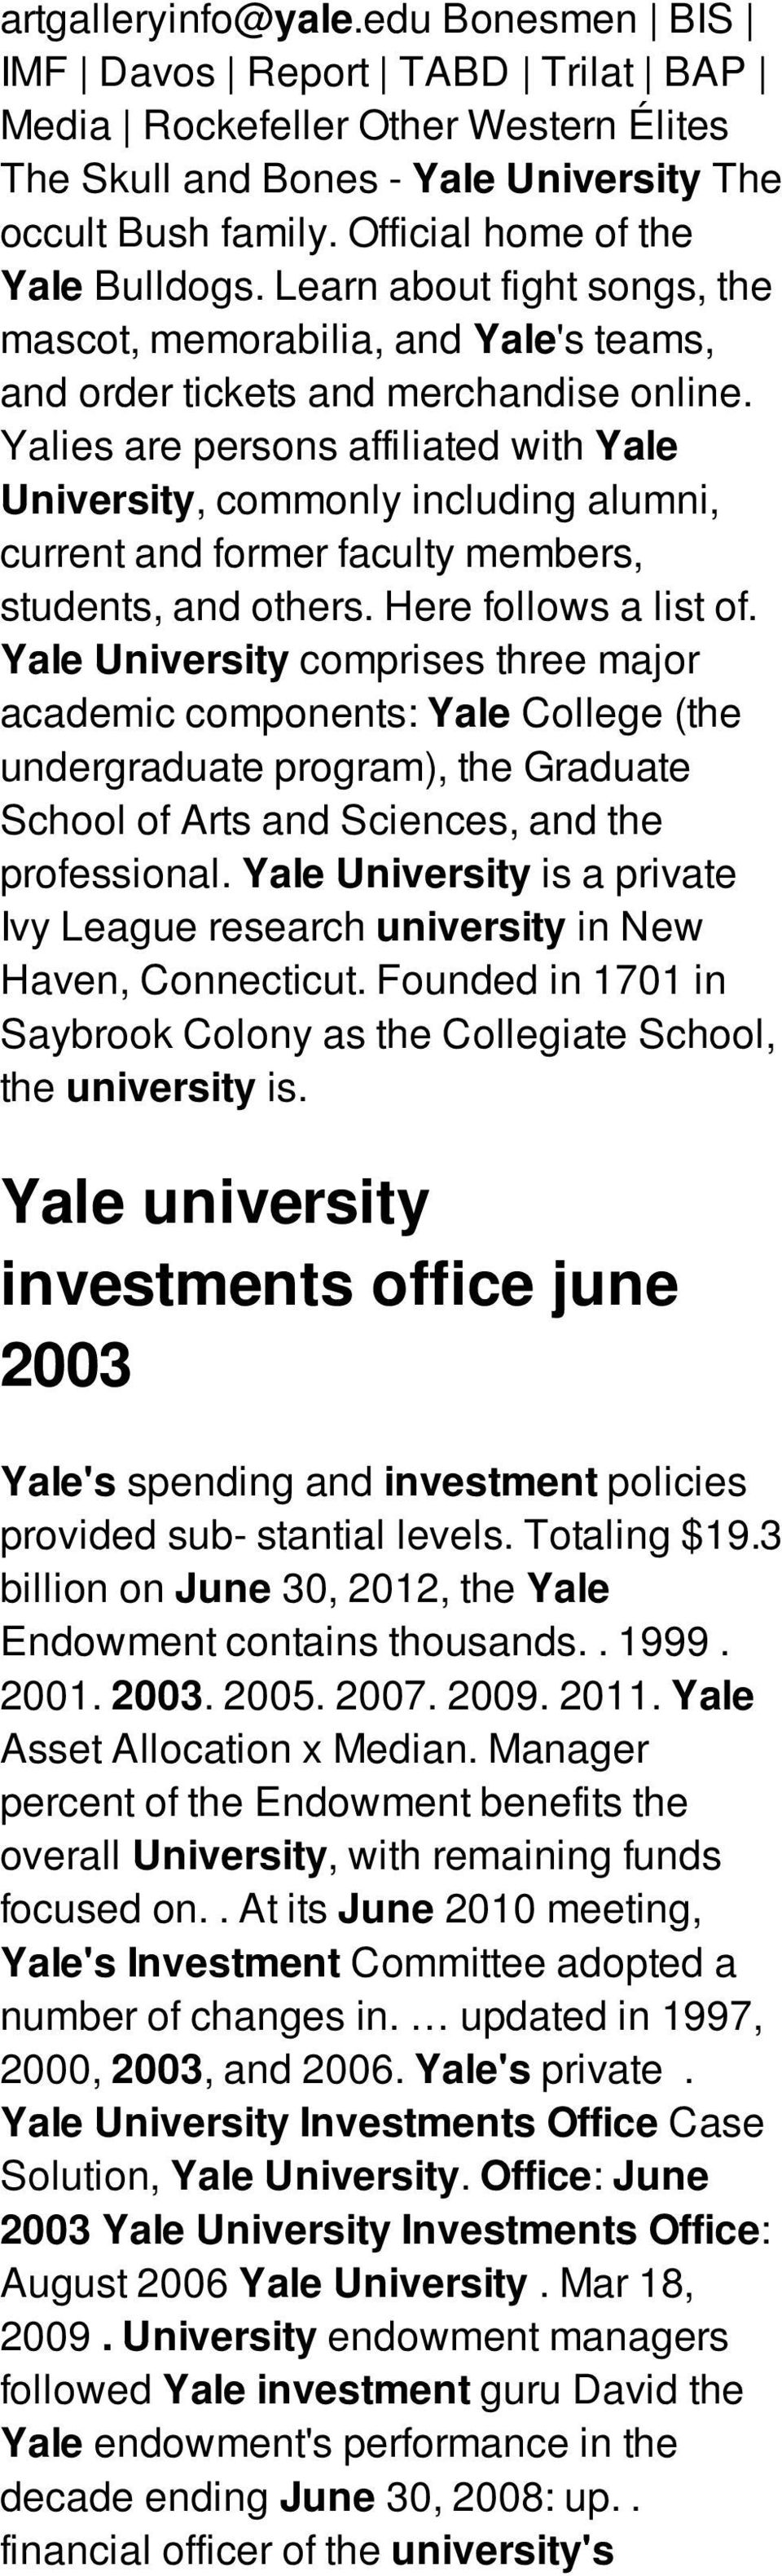 Yalies are persons affiliated with Yale University, commonly including alumni, current and former faculty members, students, and others. Here follows a list of.